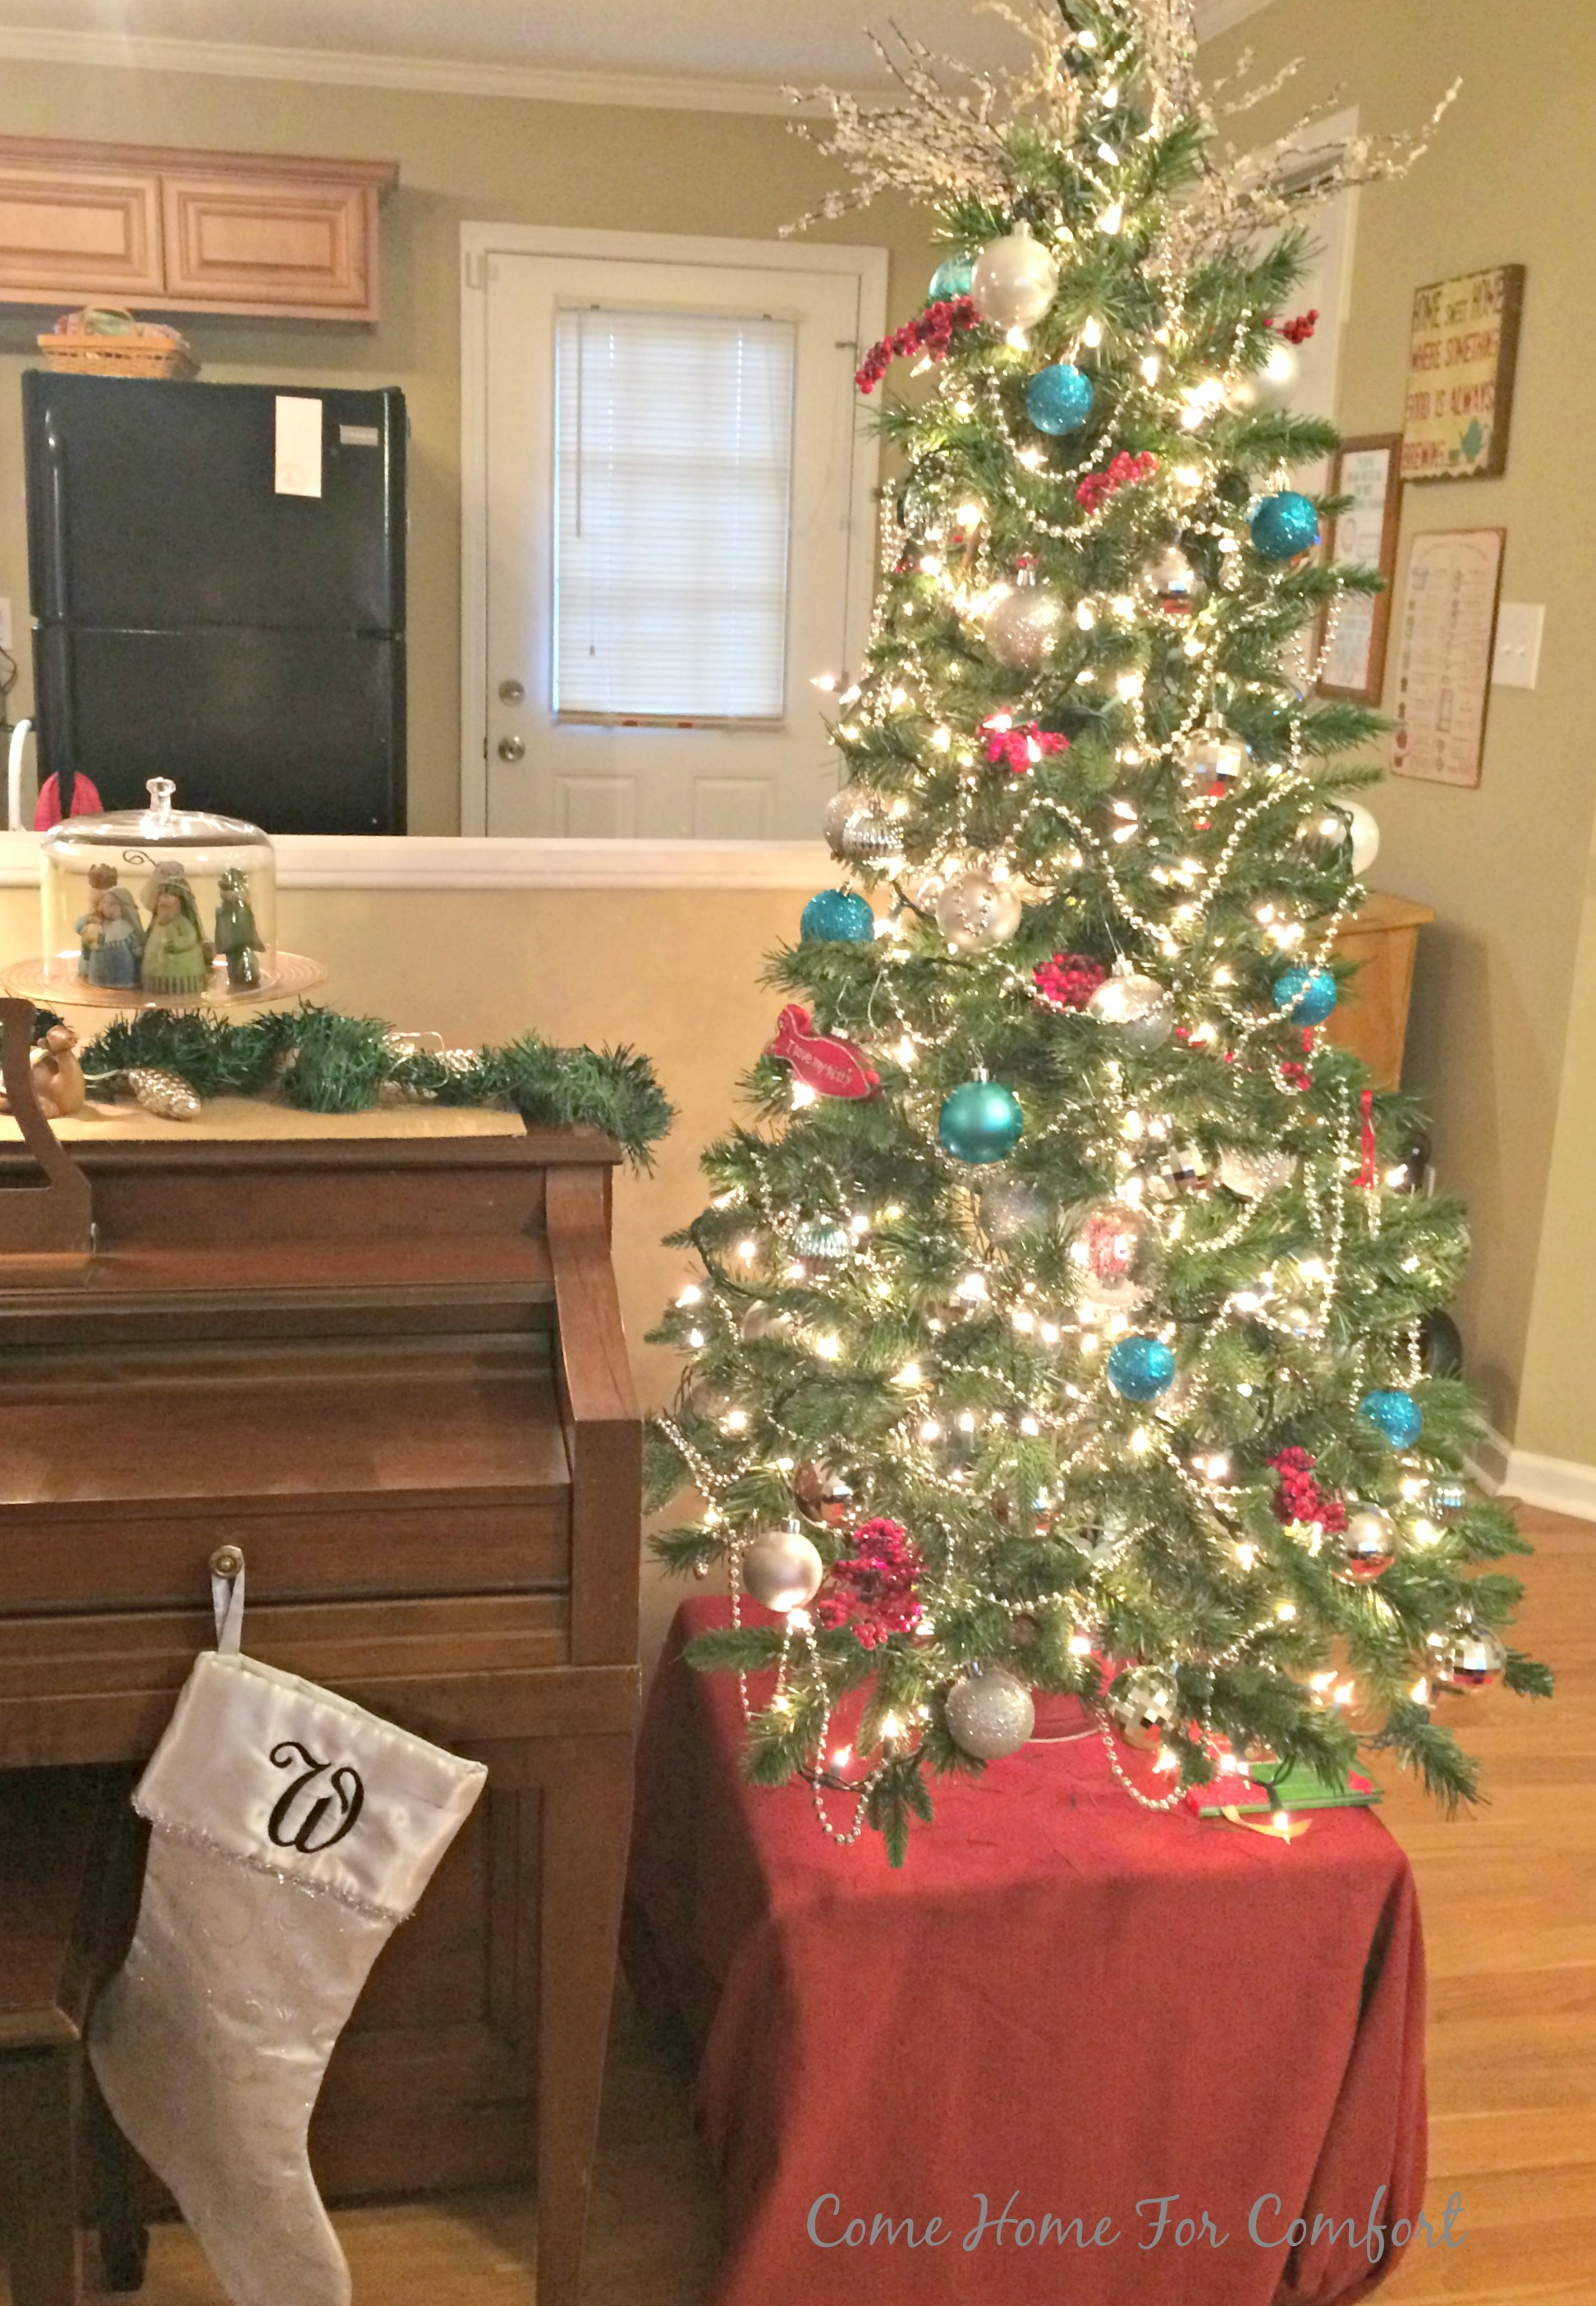 Christmas decor tour 2015 come home for comfort Channel 7 better homes and gardens recipes